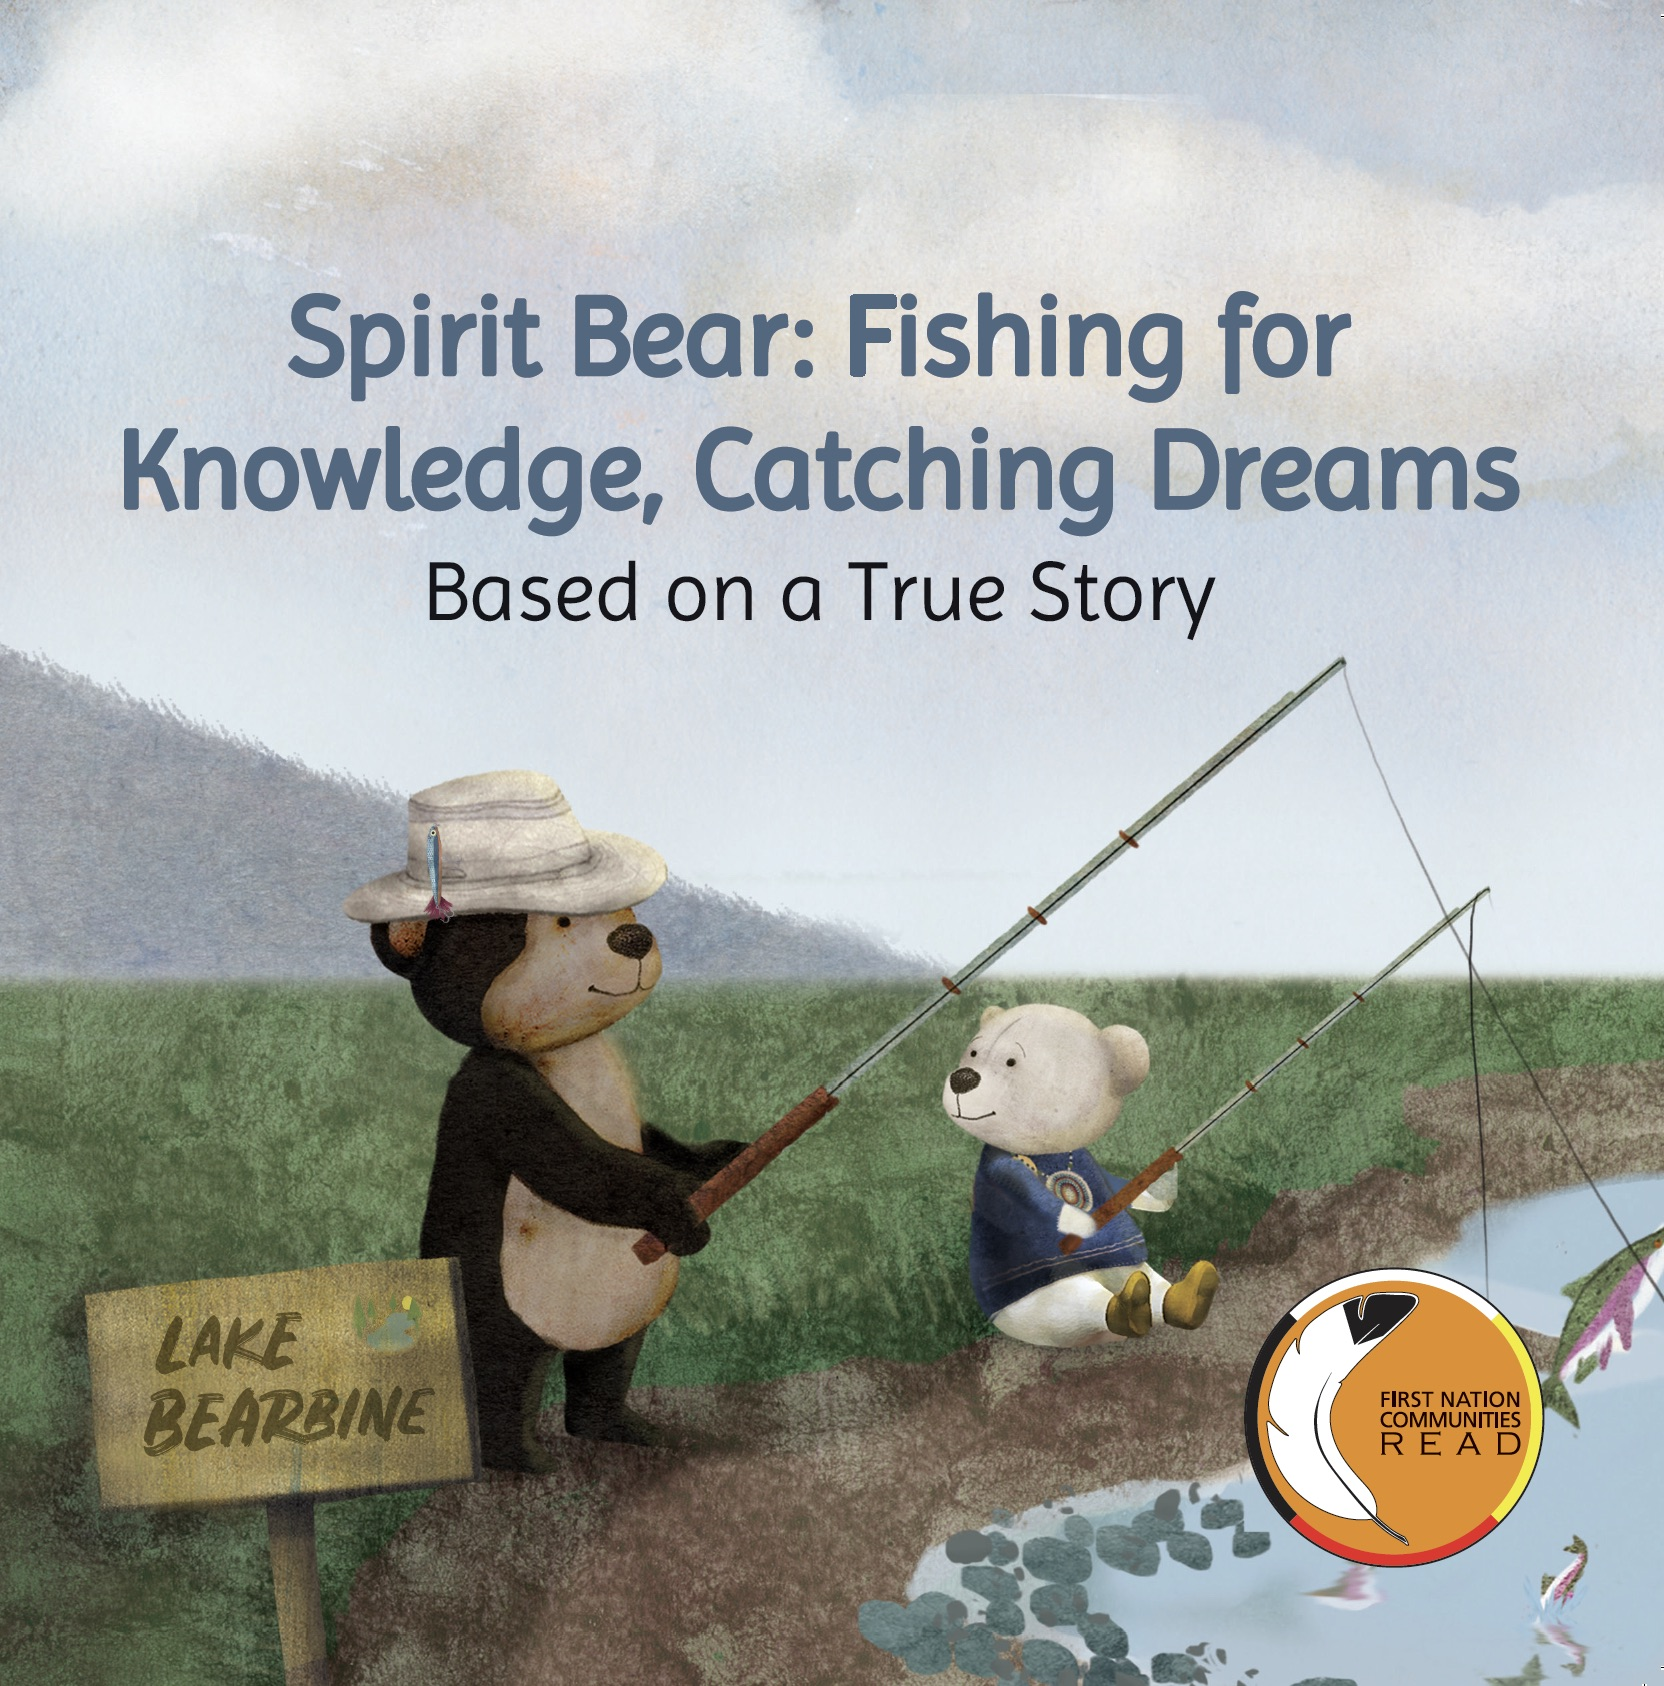 spirit_bear_fishing_for_knowledge_catching_dreams_cover_with_fncr_logo_pdf